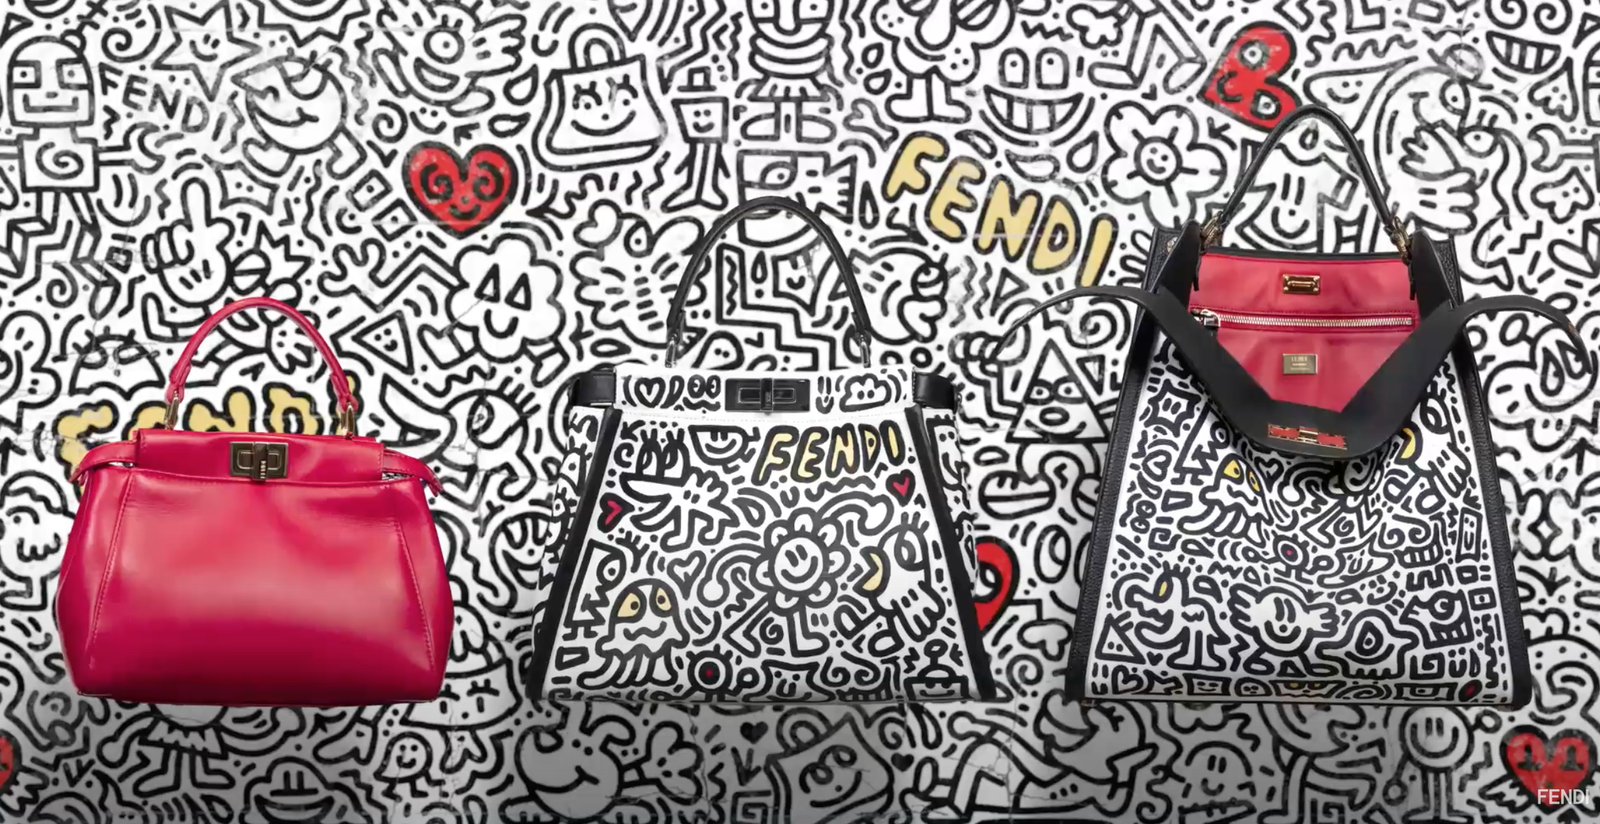 FENDI LAUNCHES A CAPSULE COLLECTION, FOR THE CHINESE VALENTINE'S DAY, IN COLLABORATION WITH SAM COX AKA MR. DOOODLE